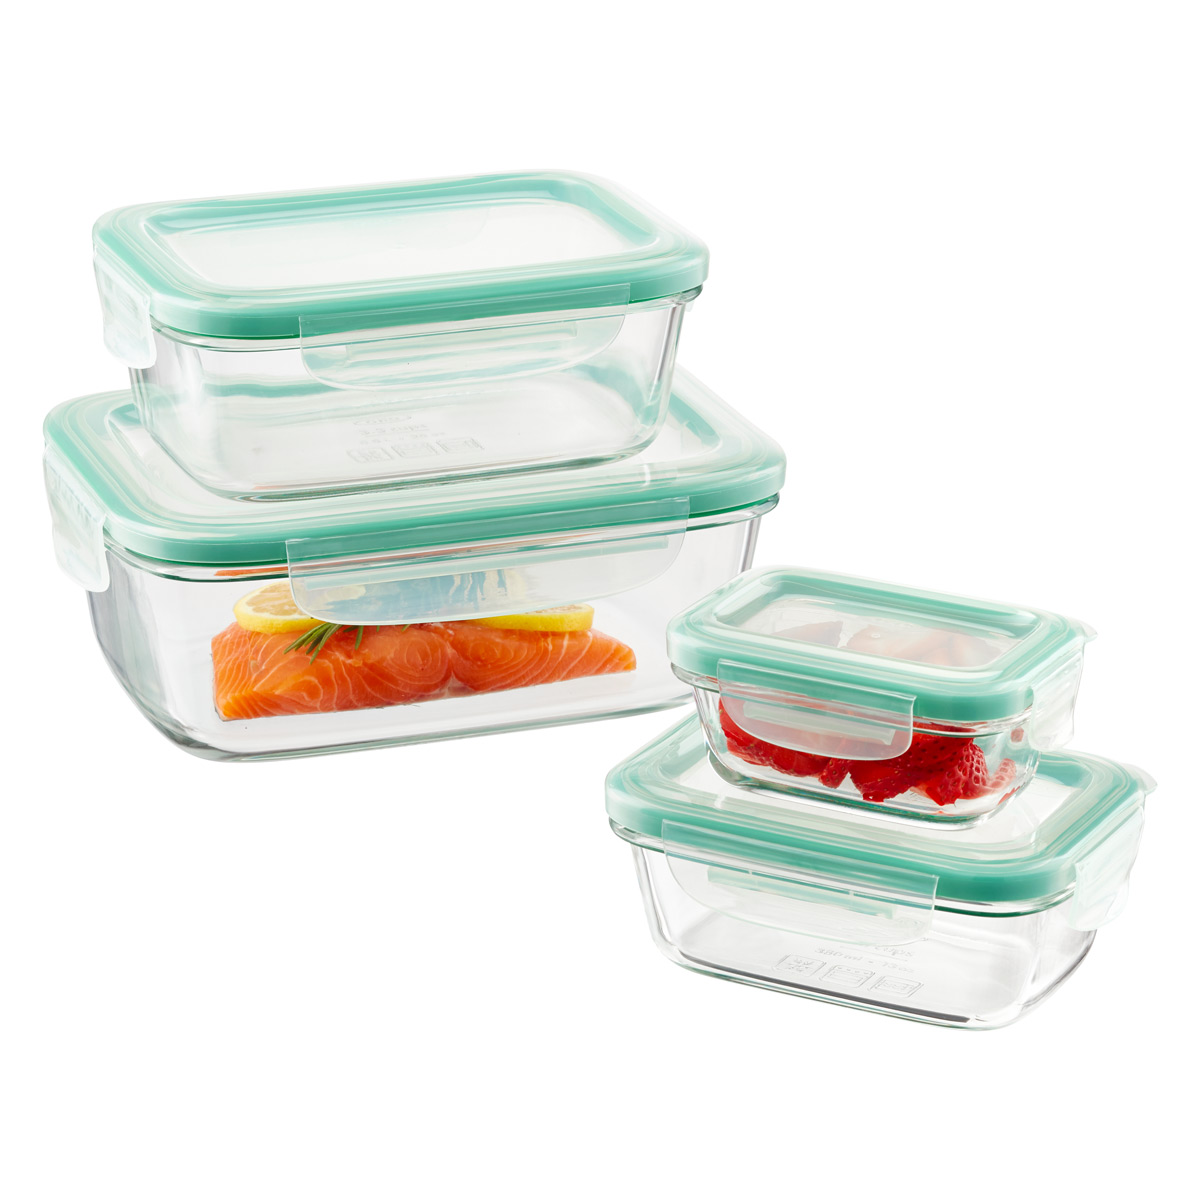 Glass Storage Containers With Lids The Glasslock Food